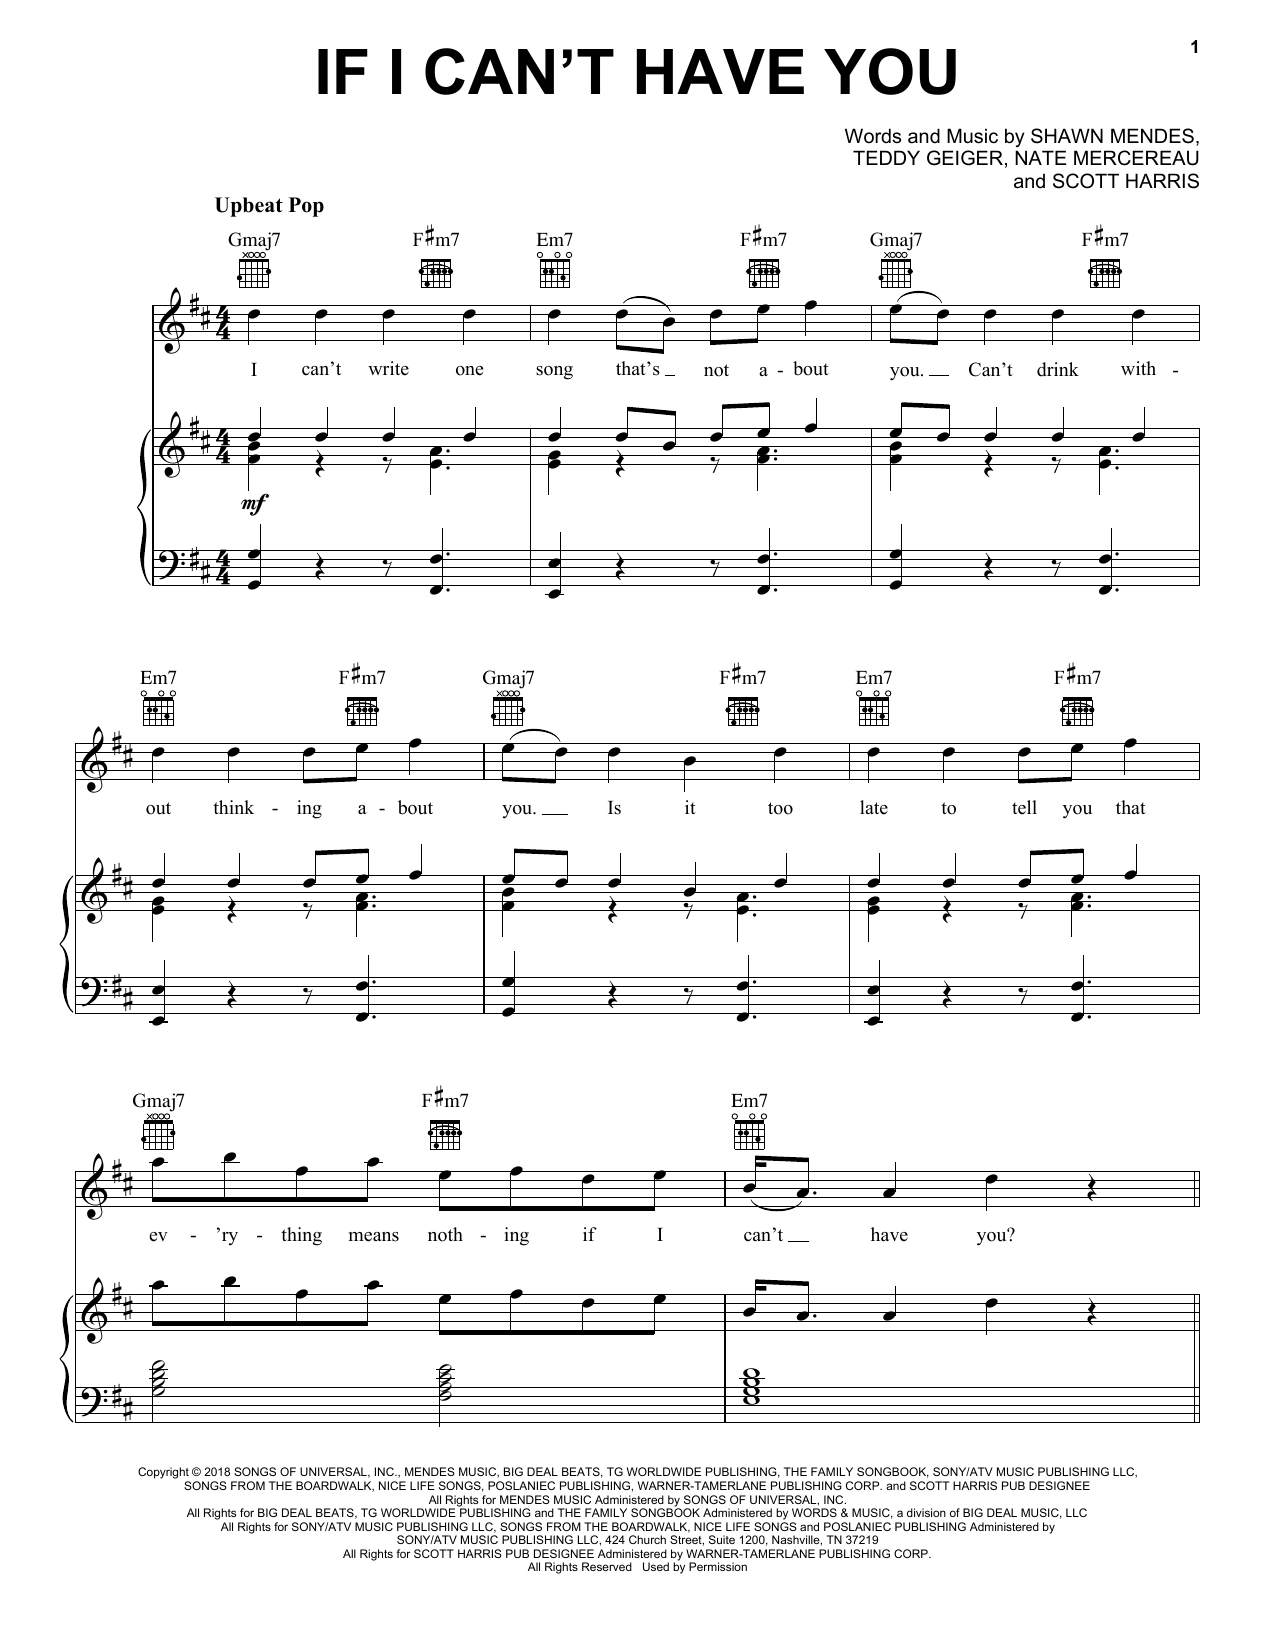 Shawn Mendes If I Can't Have You sheet music notes and chords. Download Printable PDF.